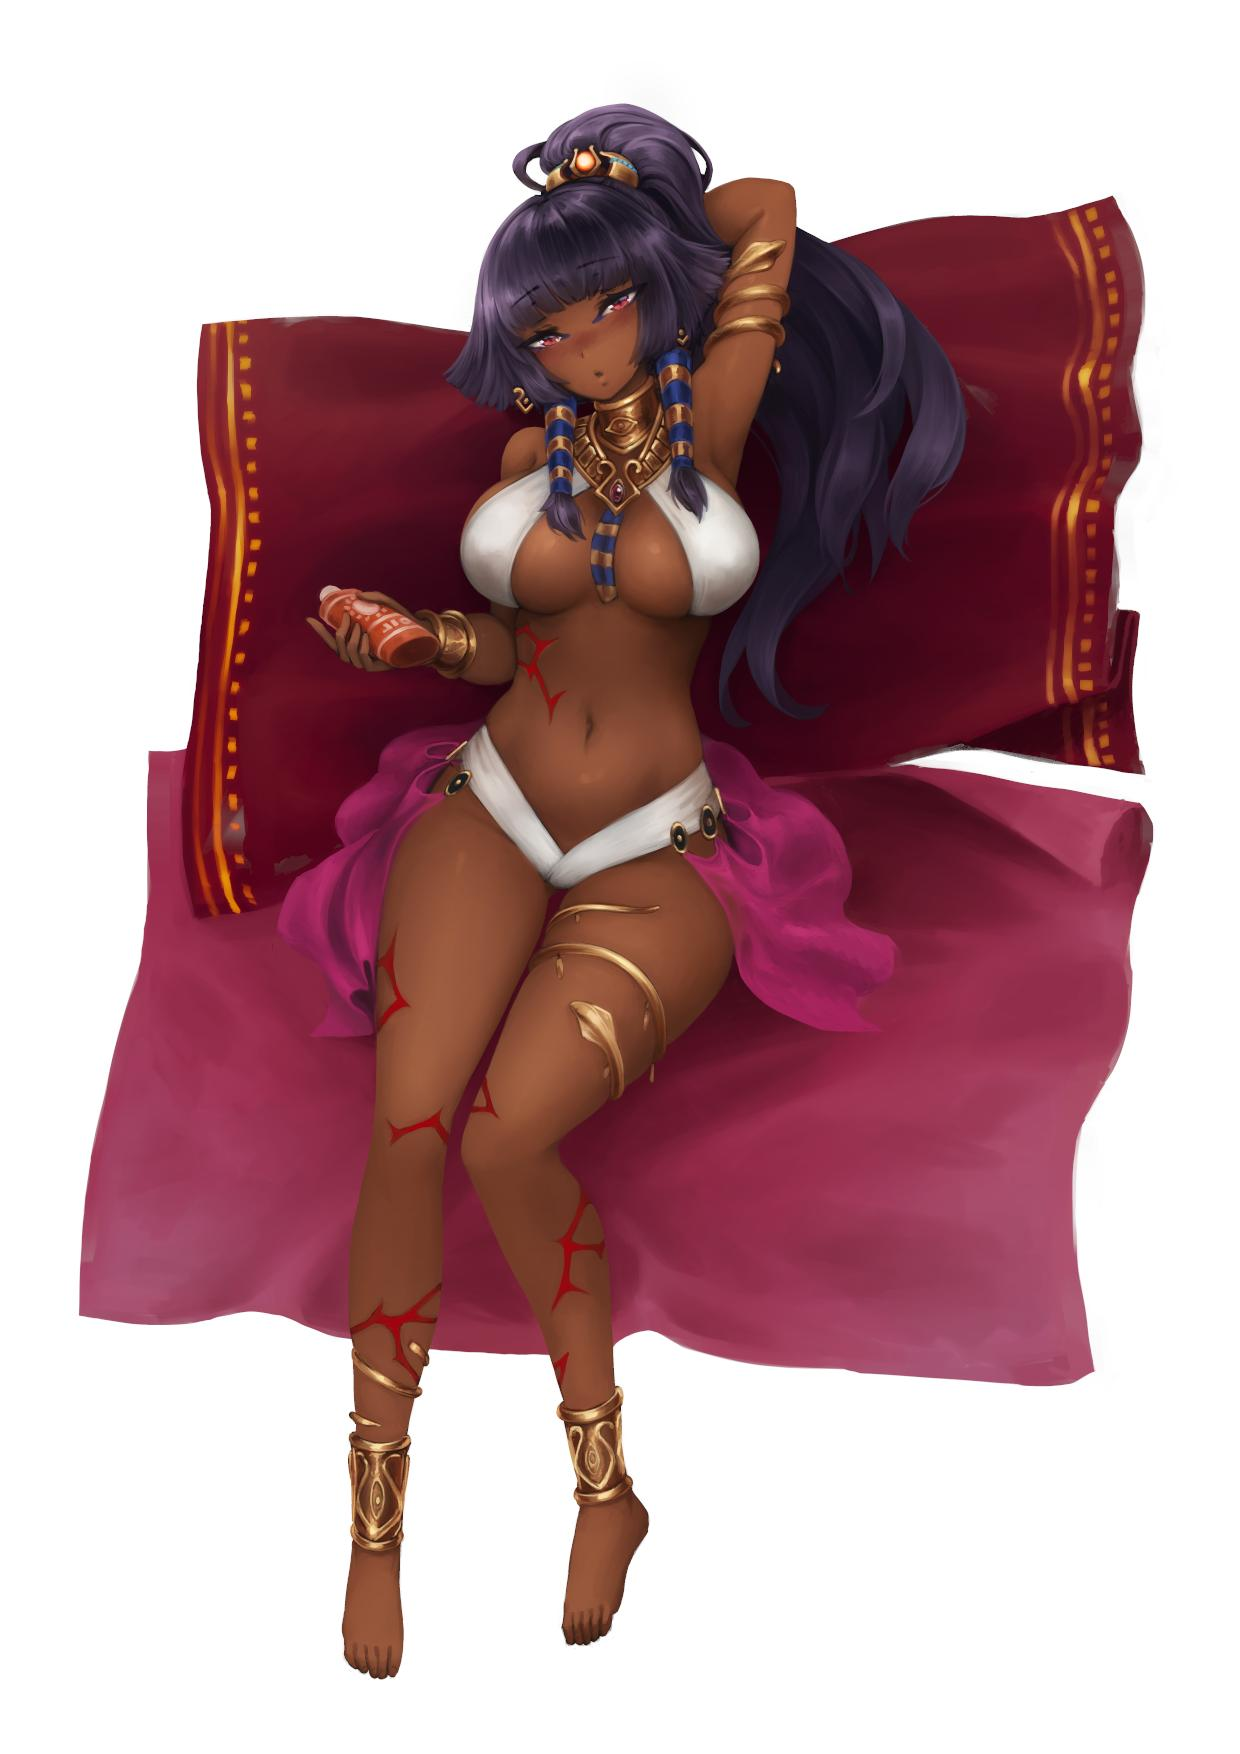 1girl anklet arm_behind_head armlet armpits bangs barbariank bare_legs bare_shoulders barefoot black_hair blanket blunt_bangs blush bracelet breasts breasts_apart commentary dark_skin egyptian eyebrows_visible_through_hair full_body hair_ornament hair_tubes head_tilt highres holding jewelry large_breasts long_hair looking_at_viewer lotion monster_girl_encyclopedia navel necklace parted_lips pharaoh_(monster_girl_encyclopedia) ponytail red_eyes simple_background solo stomach sunscreen symbol_commentary thighlet white_background